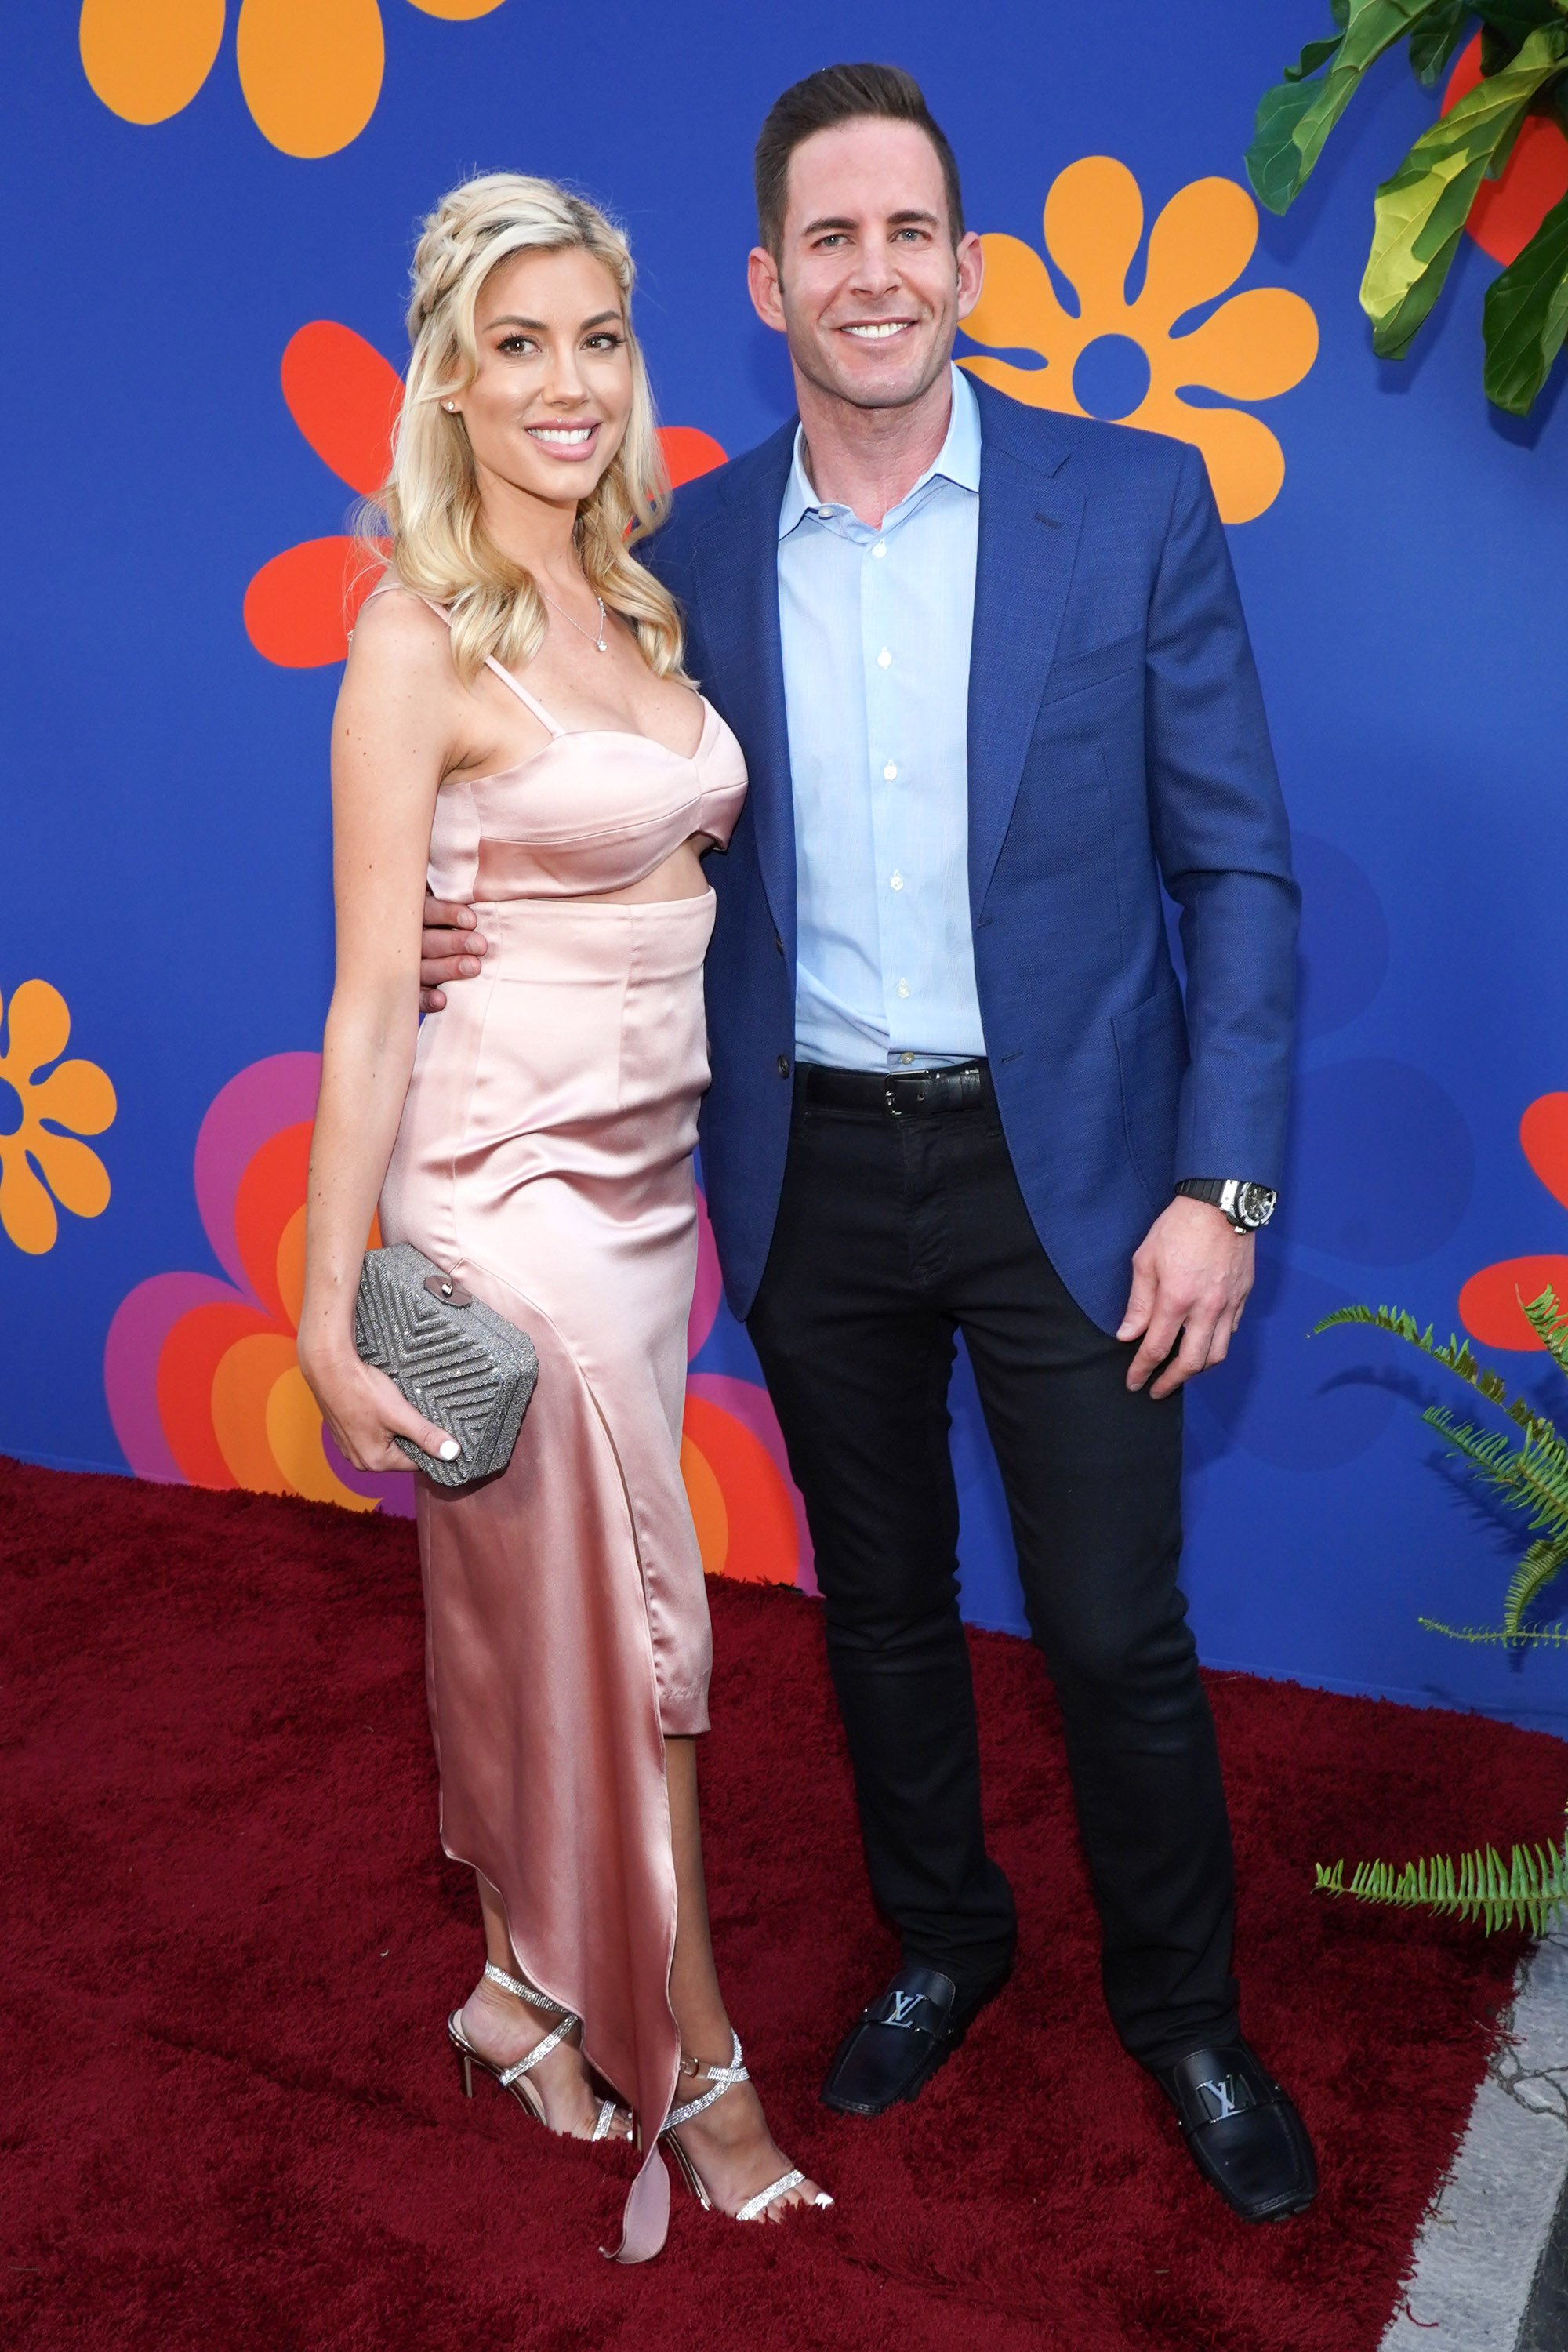 """Tarek El Moussa and Heather Rae Young attend the premiere of """"A Very Brady Renovation"""" In North Hollywood, California on September 5, 2019 